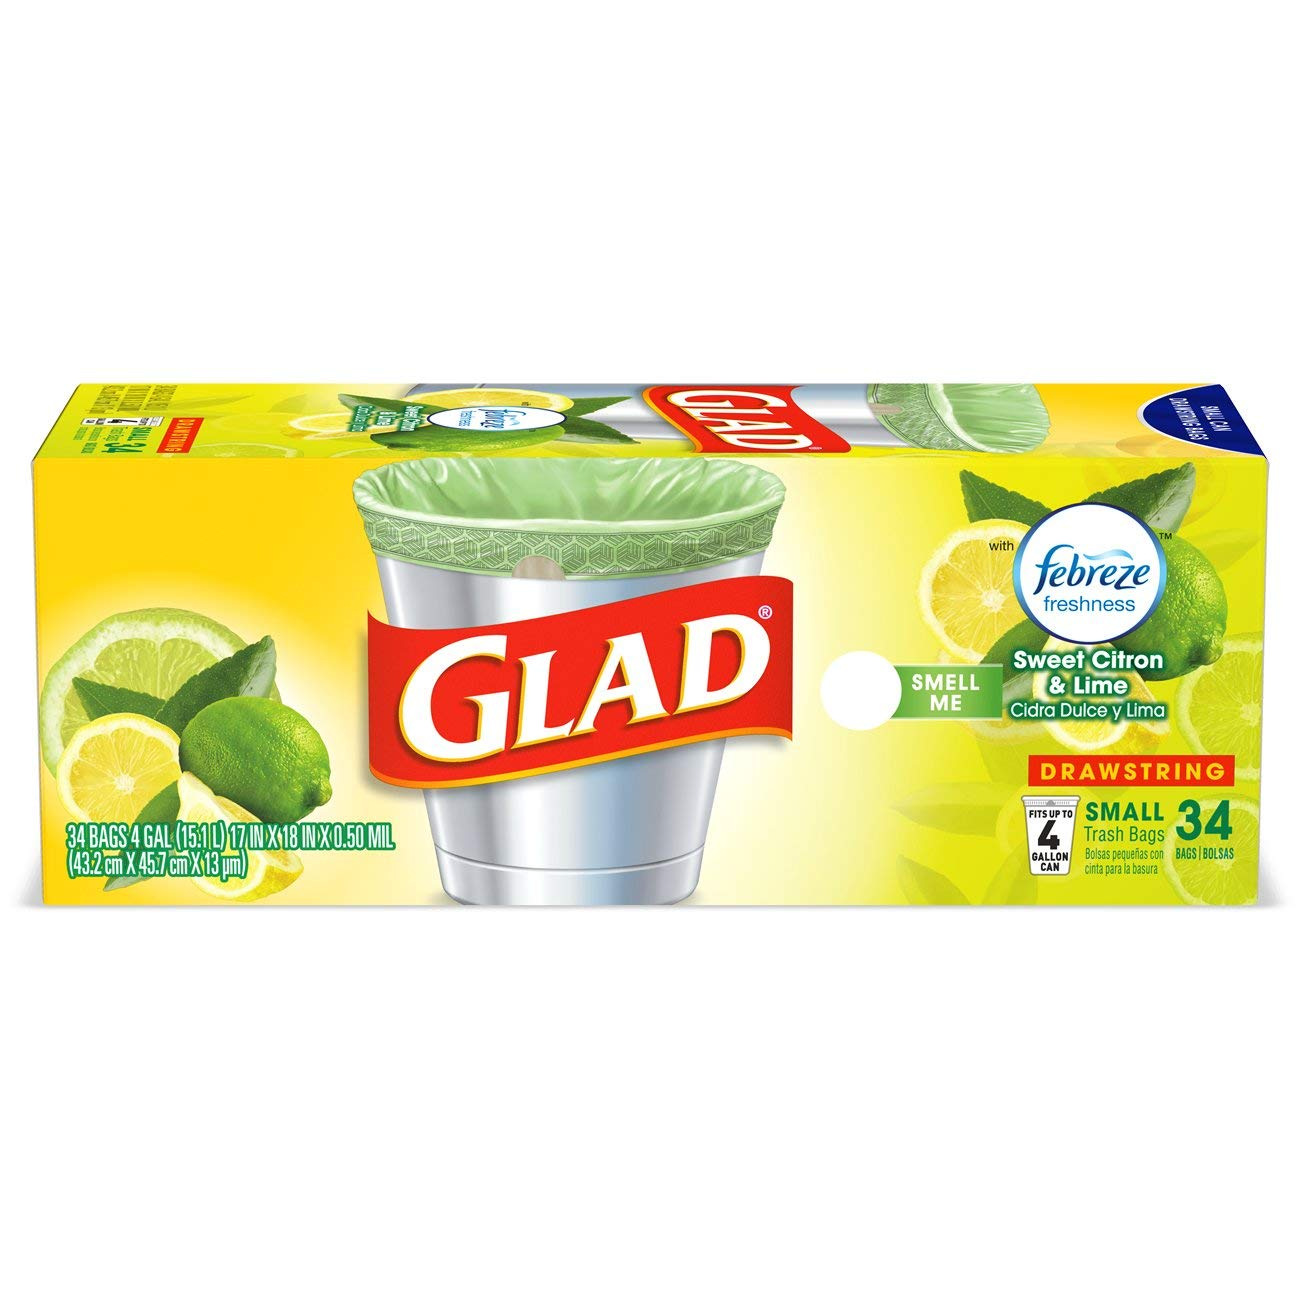 Glad OdorShield Small Drawstring Trash Bags - Febreze Sweet Citron & Lime - 4 Gallon - 34 Count - 6 Pack